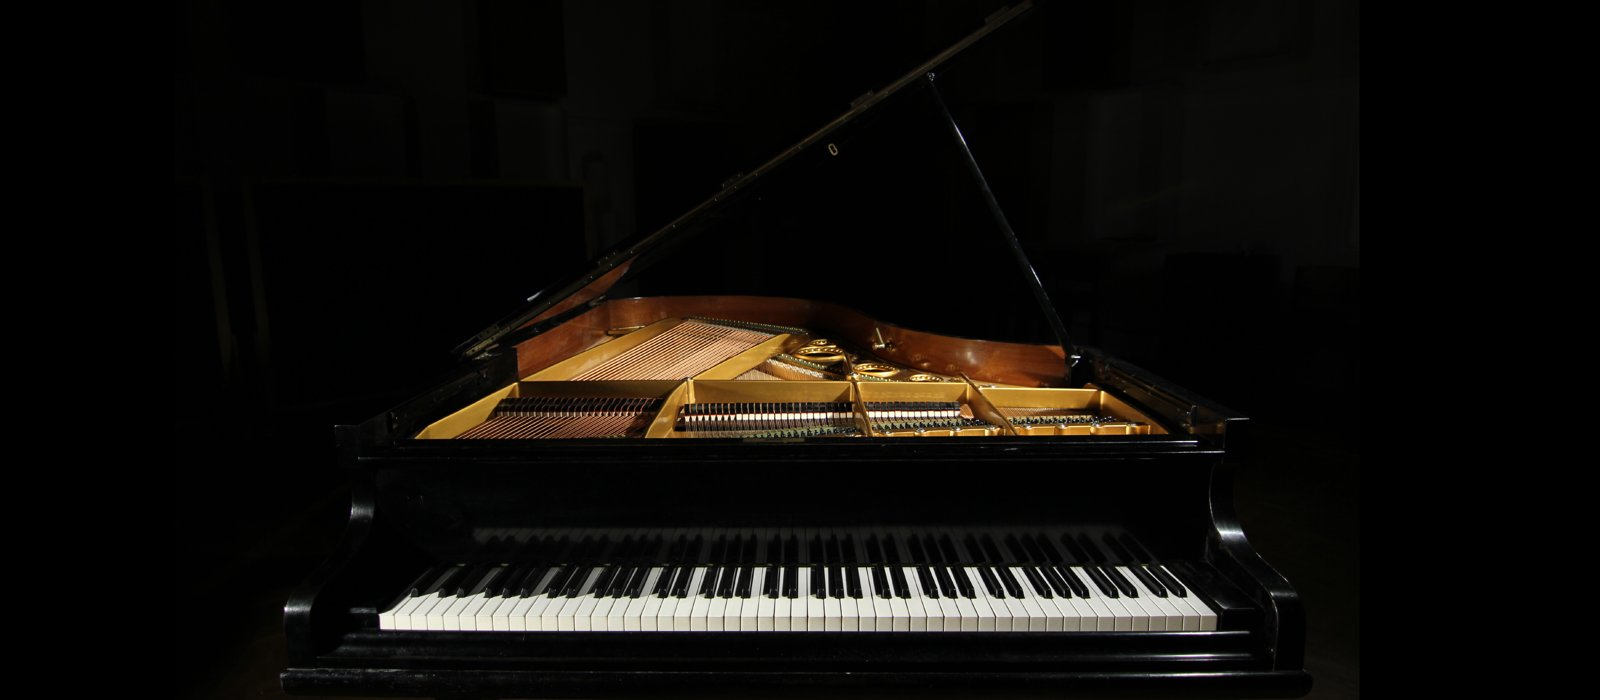 baby grand piano background pictures to pin on pinterest. Black Bedroom Furniture Sets. Home Design Ideas